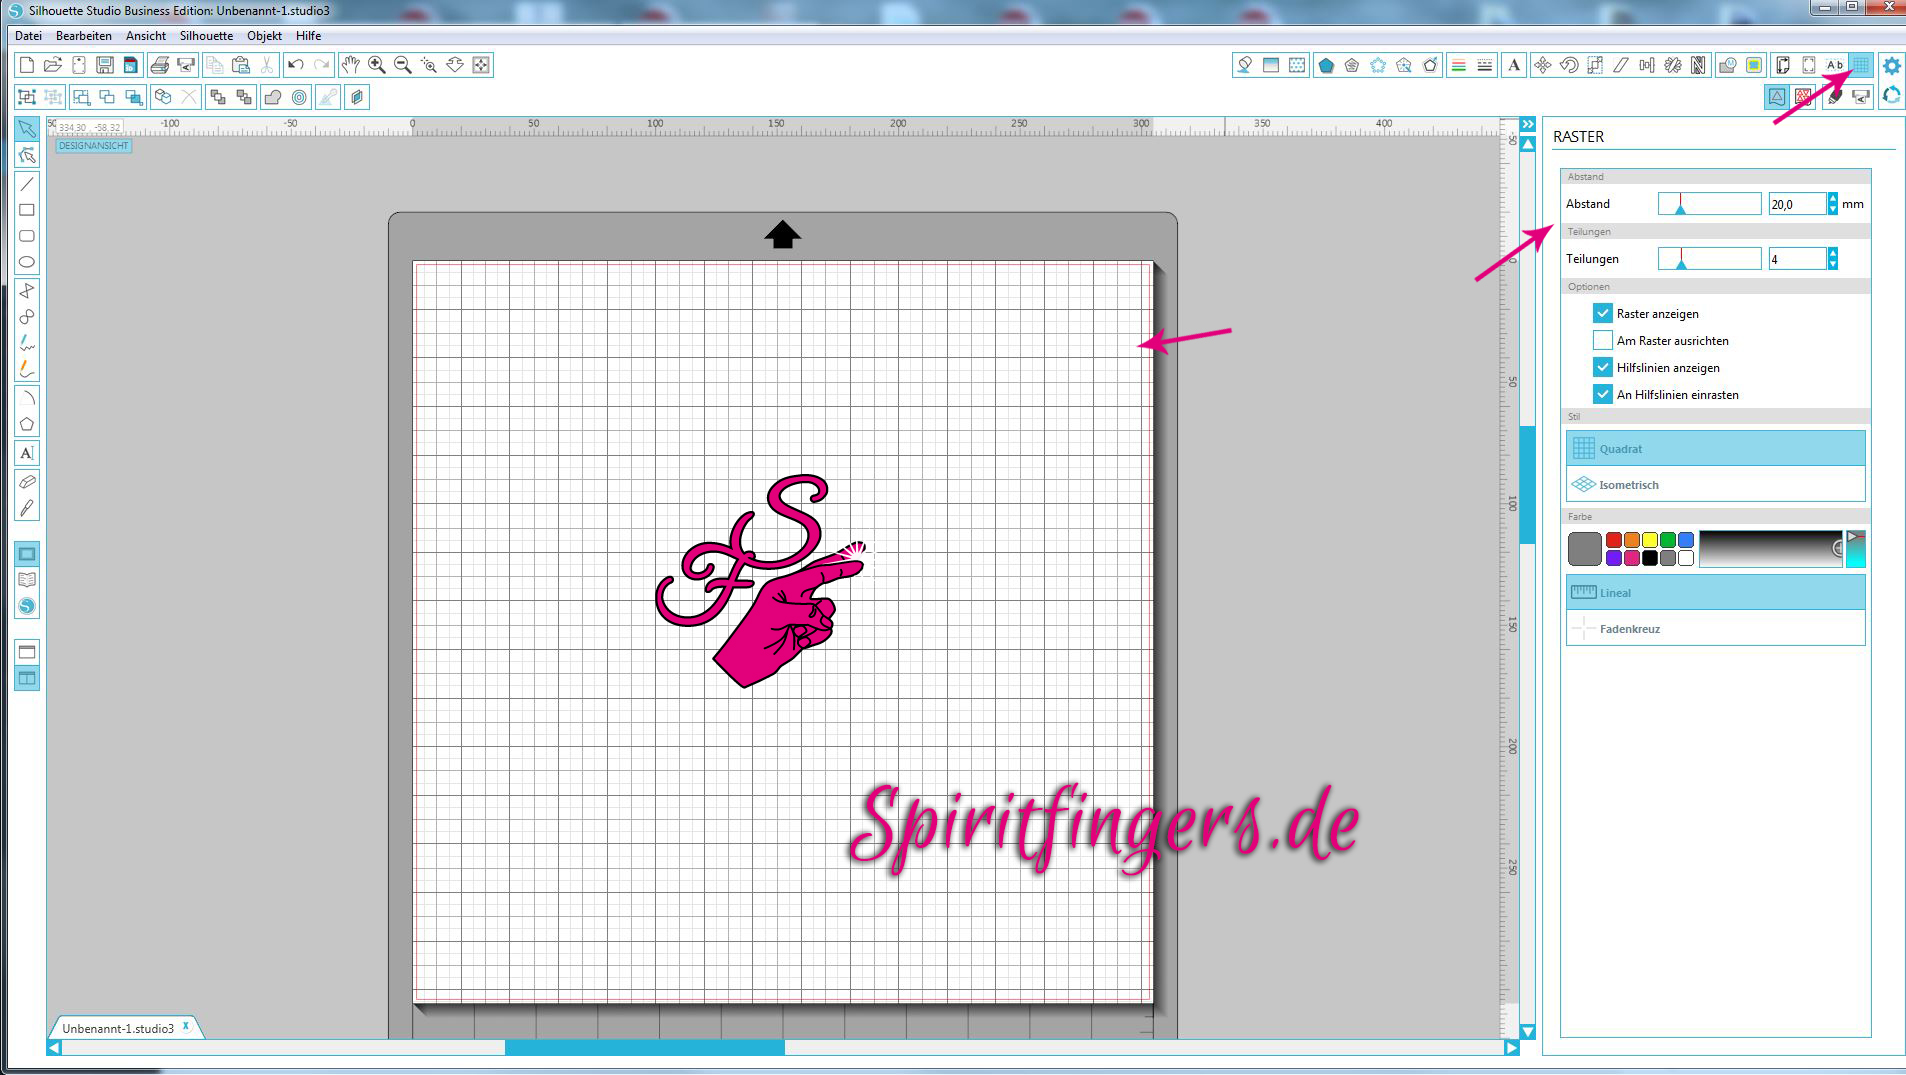 Plotter « Spiritfingers.de – just leave a sparkle